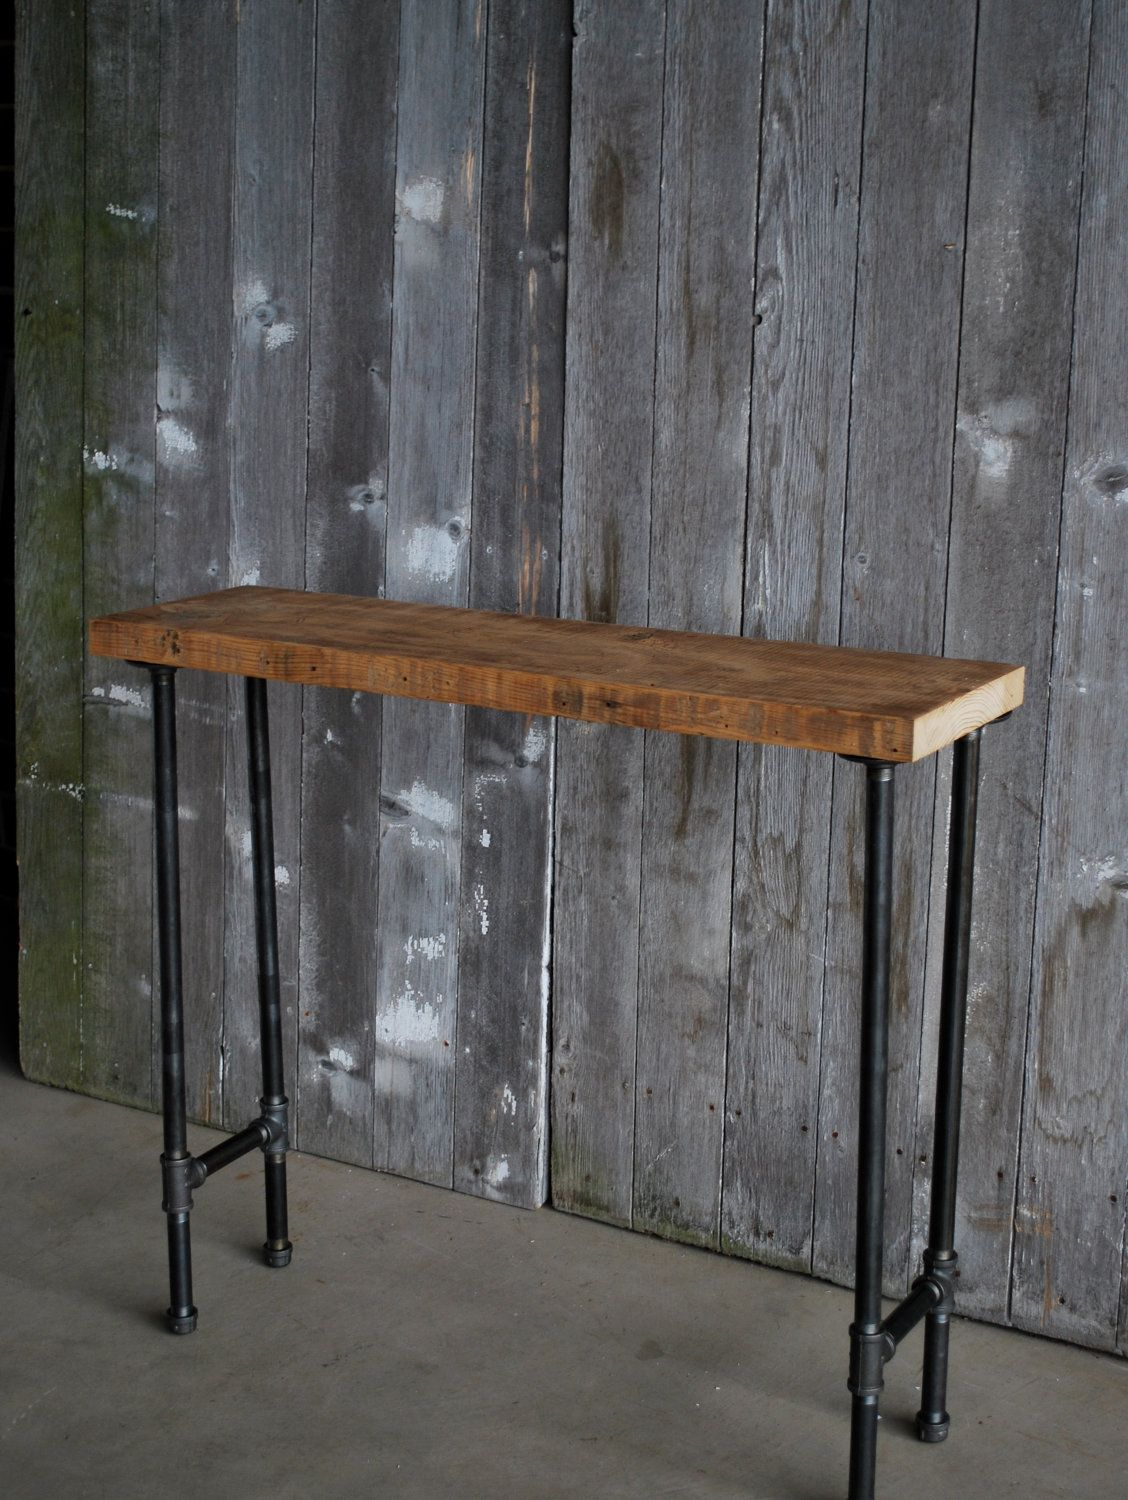 4 Ft Industrial Console Table With Pipe Legs And Hanging Locker